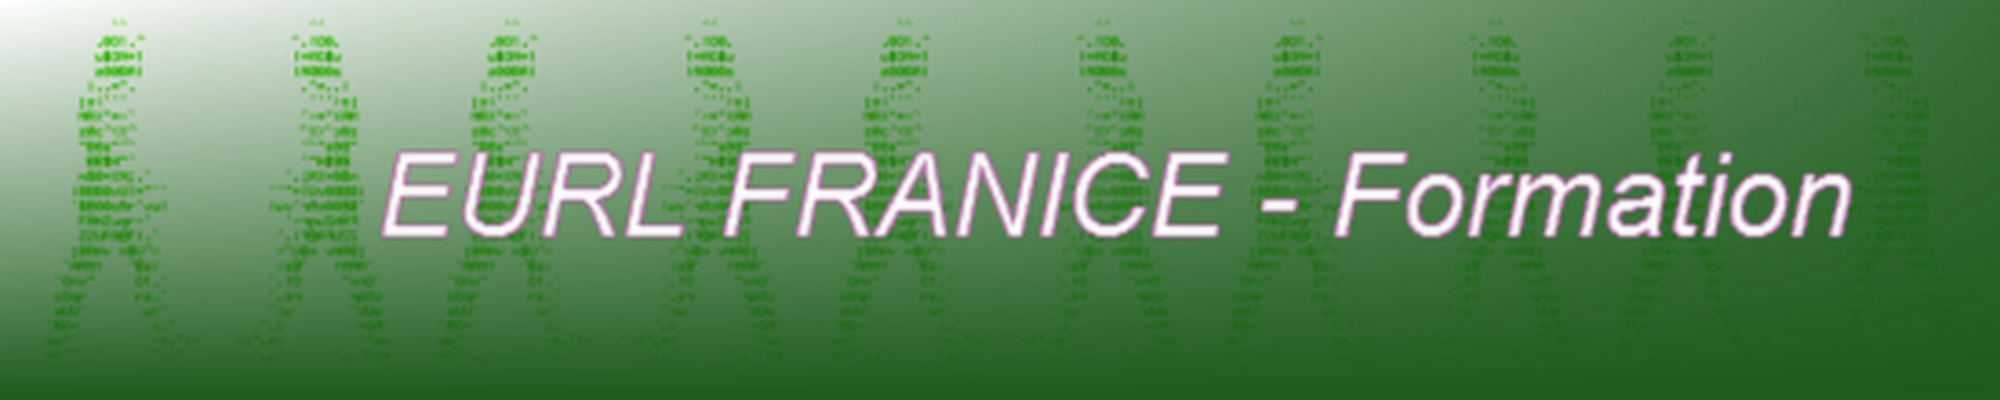 Franice Formation